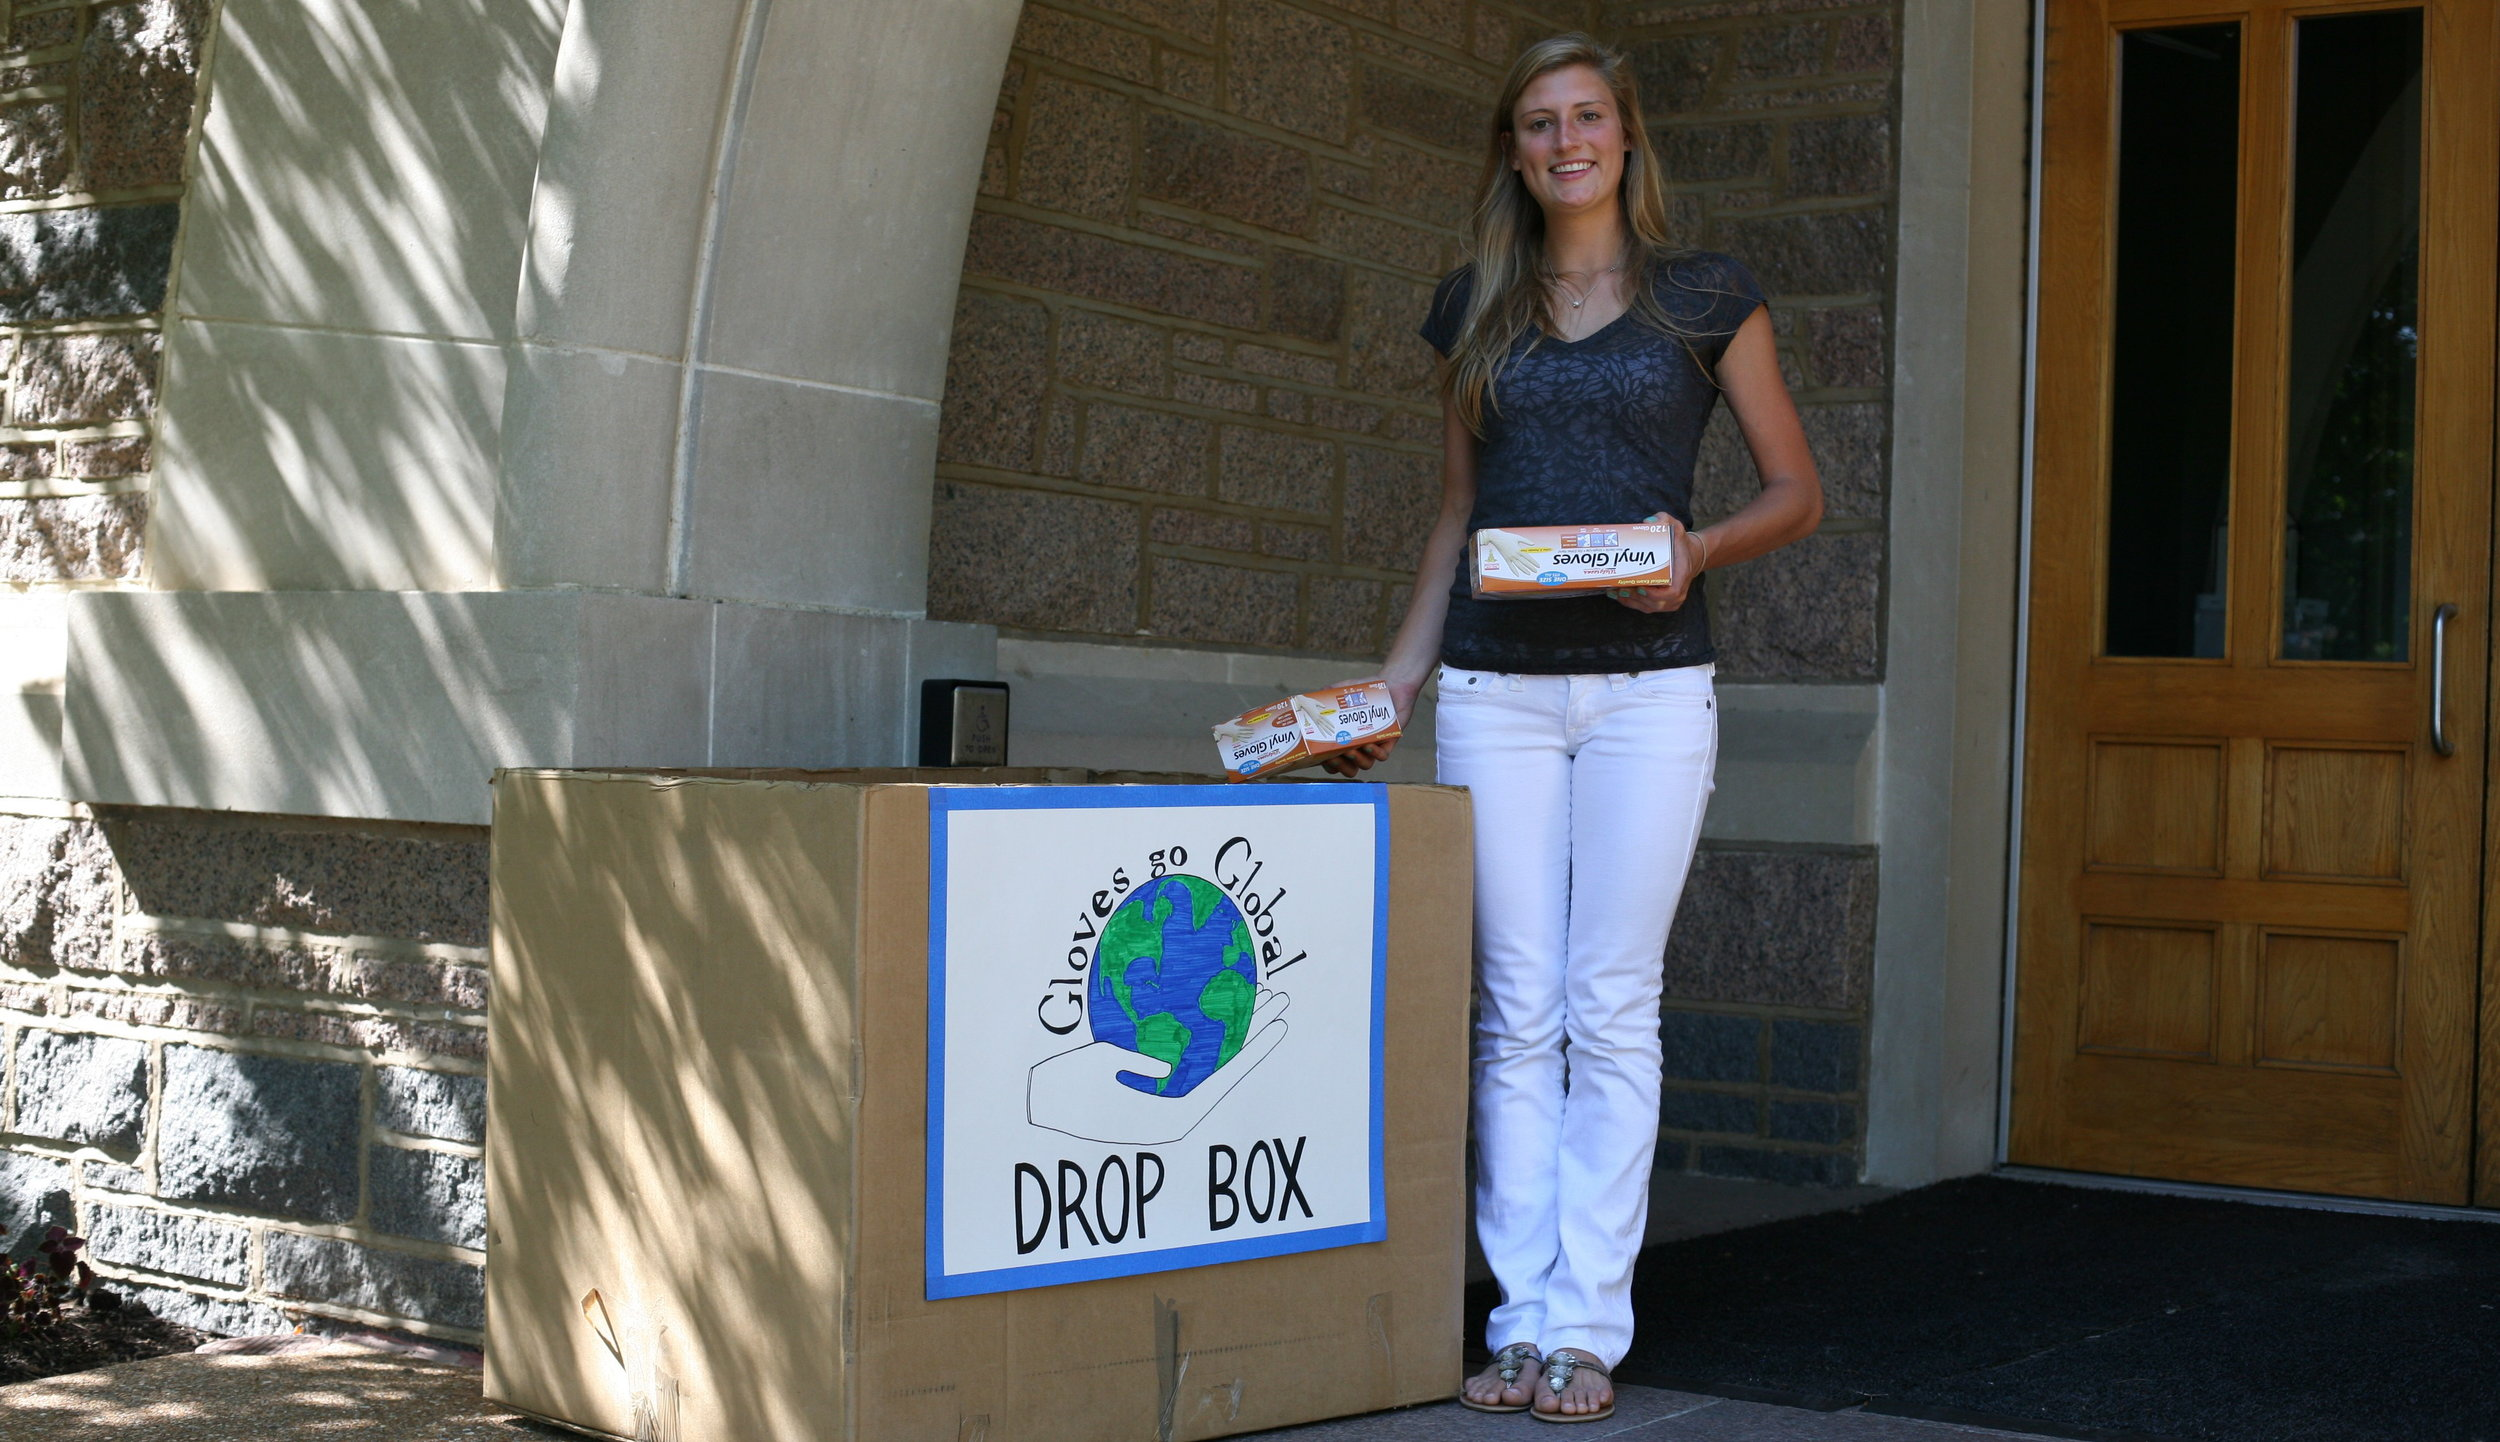 Hannah collects gloves from a drop box outside of the biology building at Washington University in St. Louis